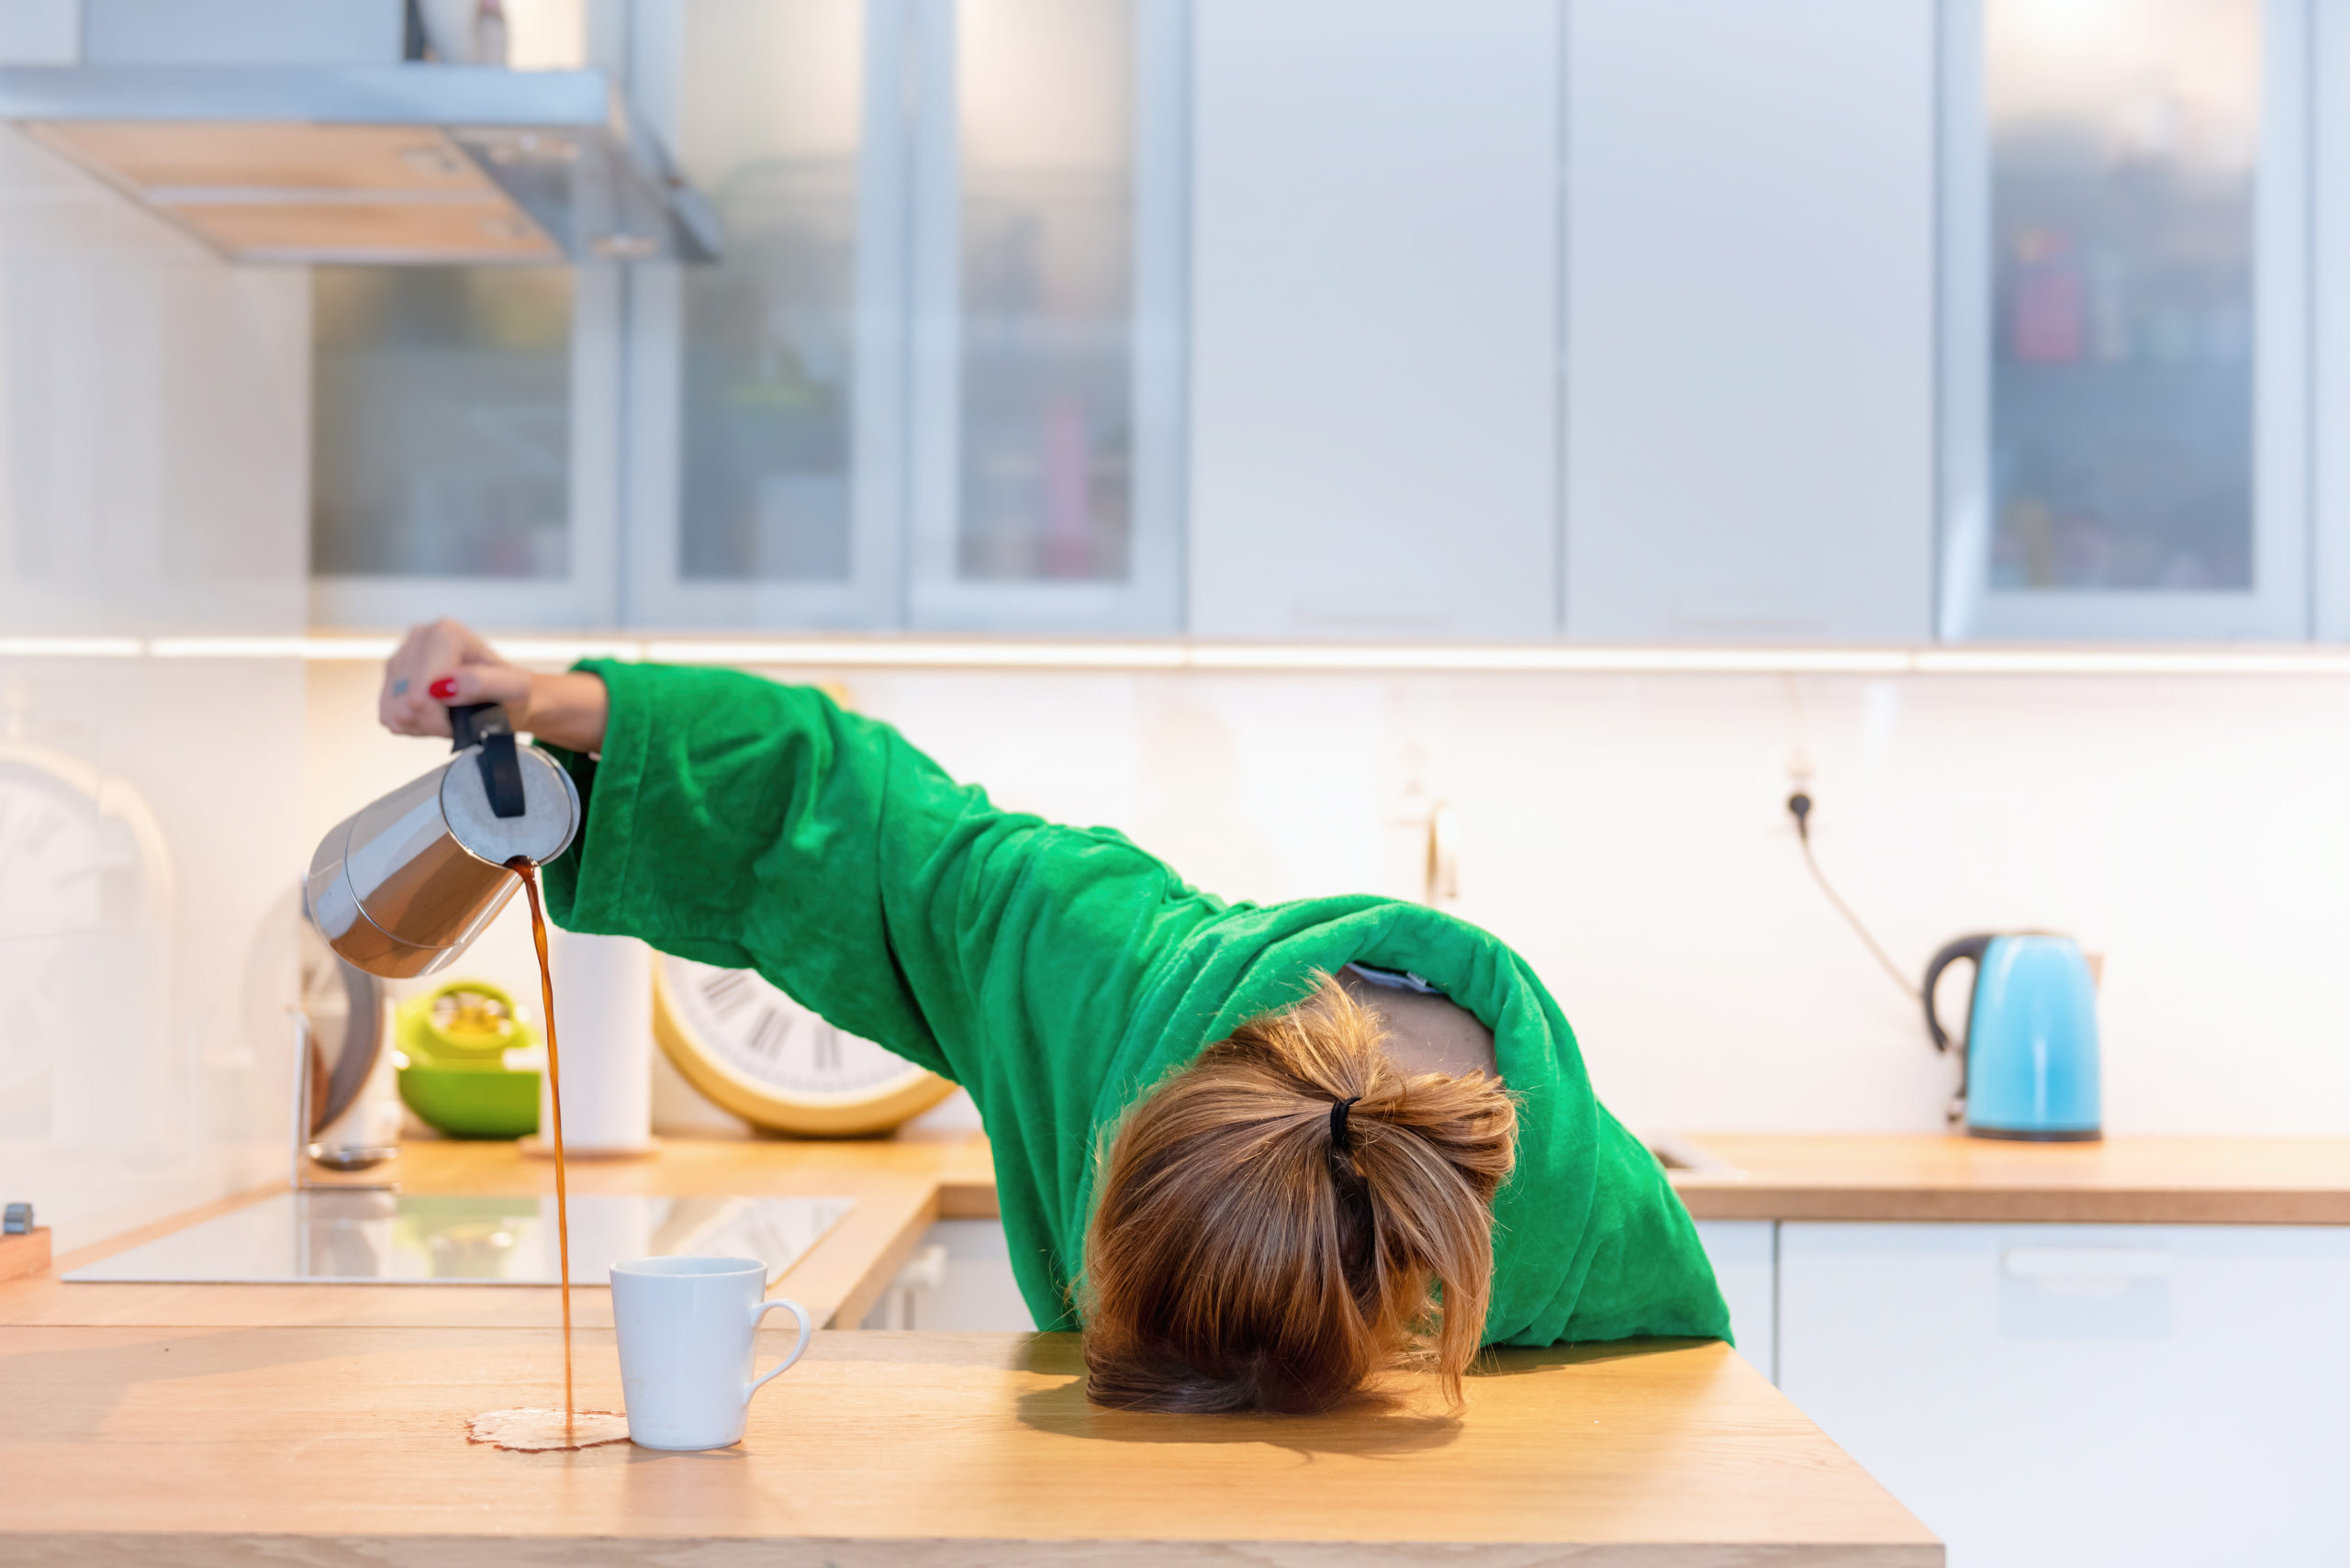 Exhausted woman spilling coffee.